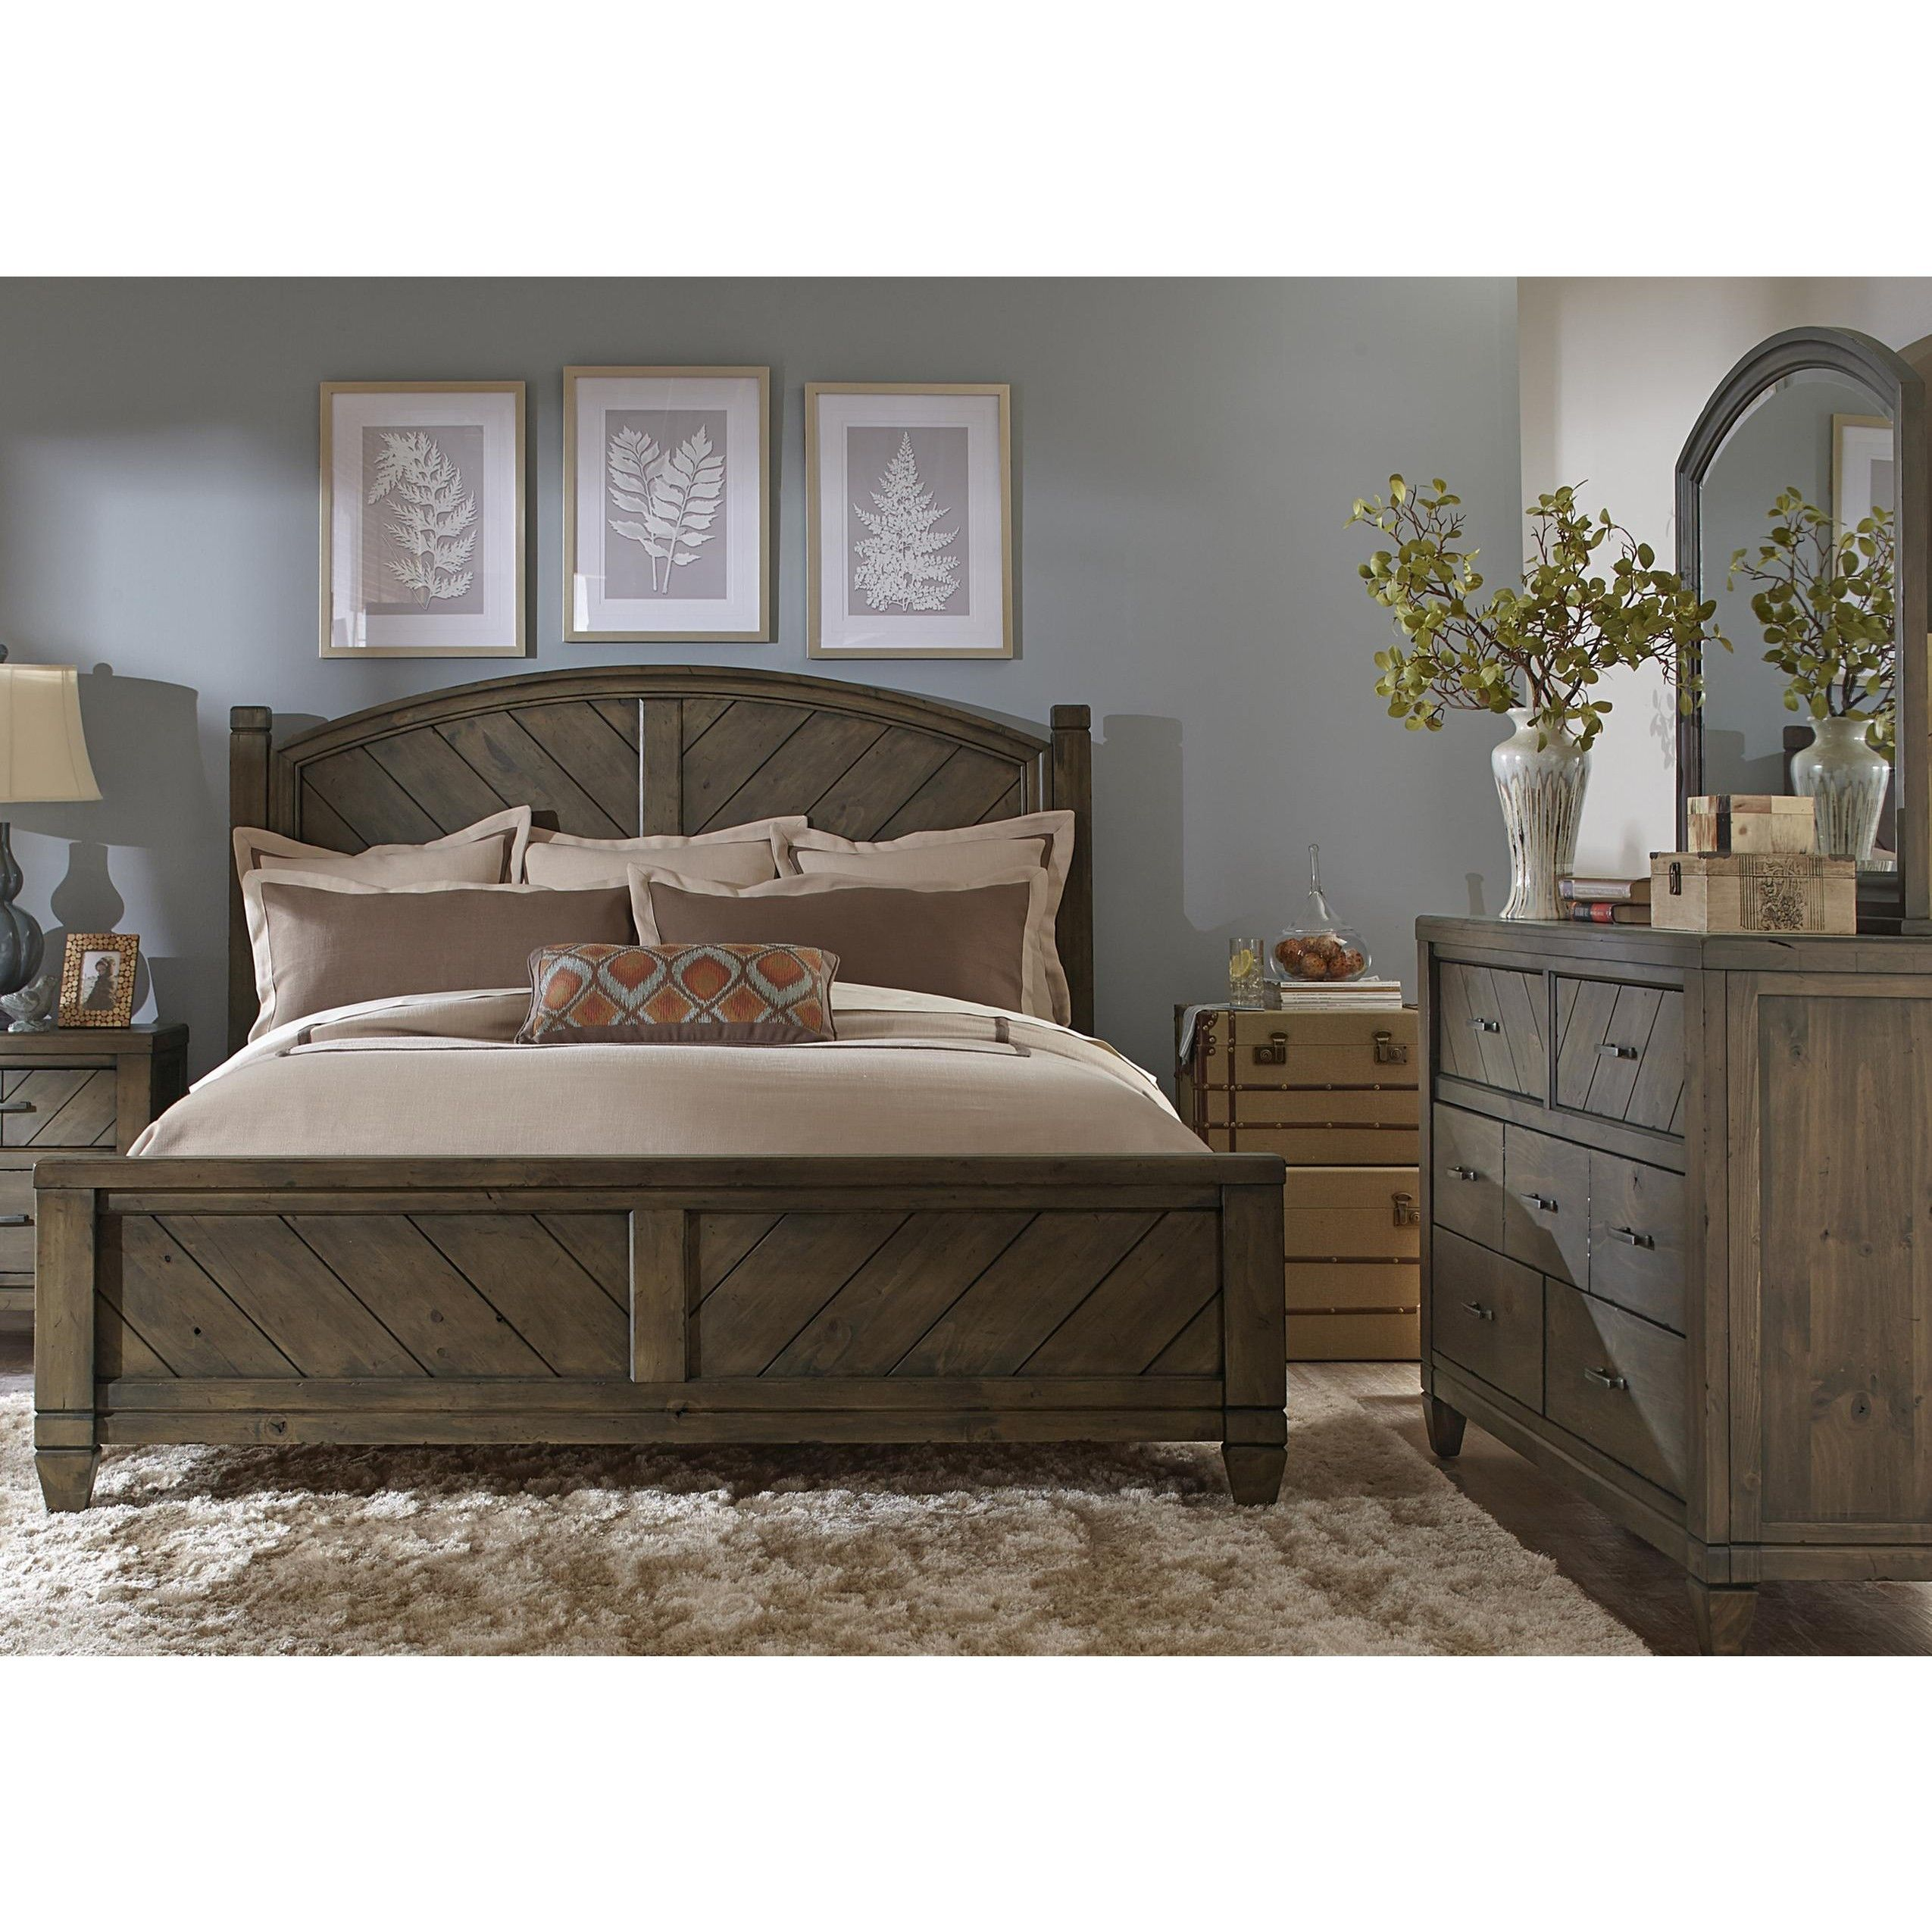 17 best ideas about bedroom sets for sale on pinterest king size french  country cottage decor. Image    3     17 Best Ideas About Bedroom Sets For Sale On